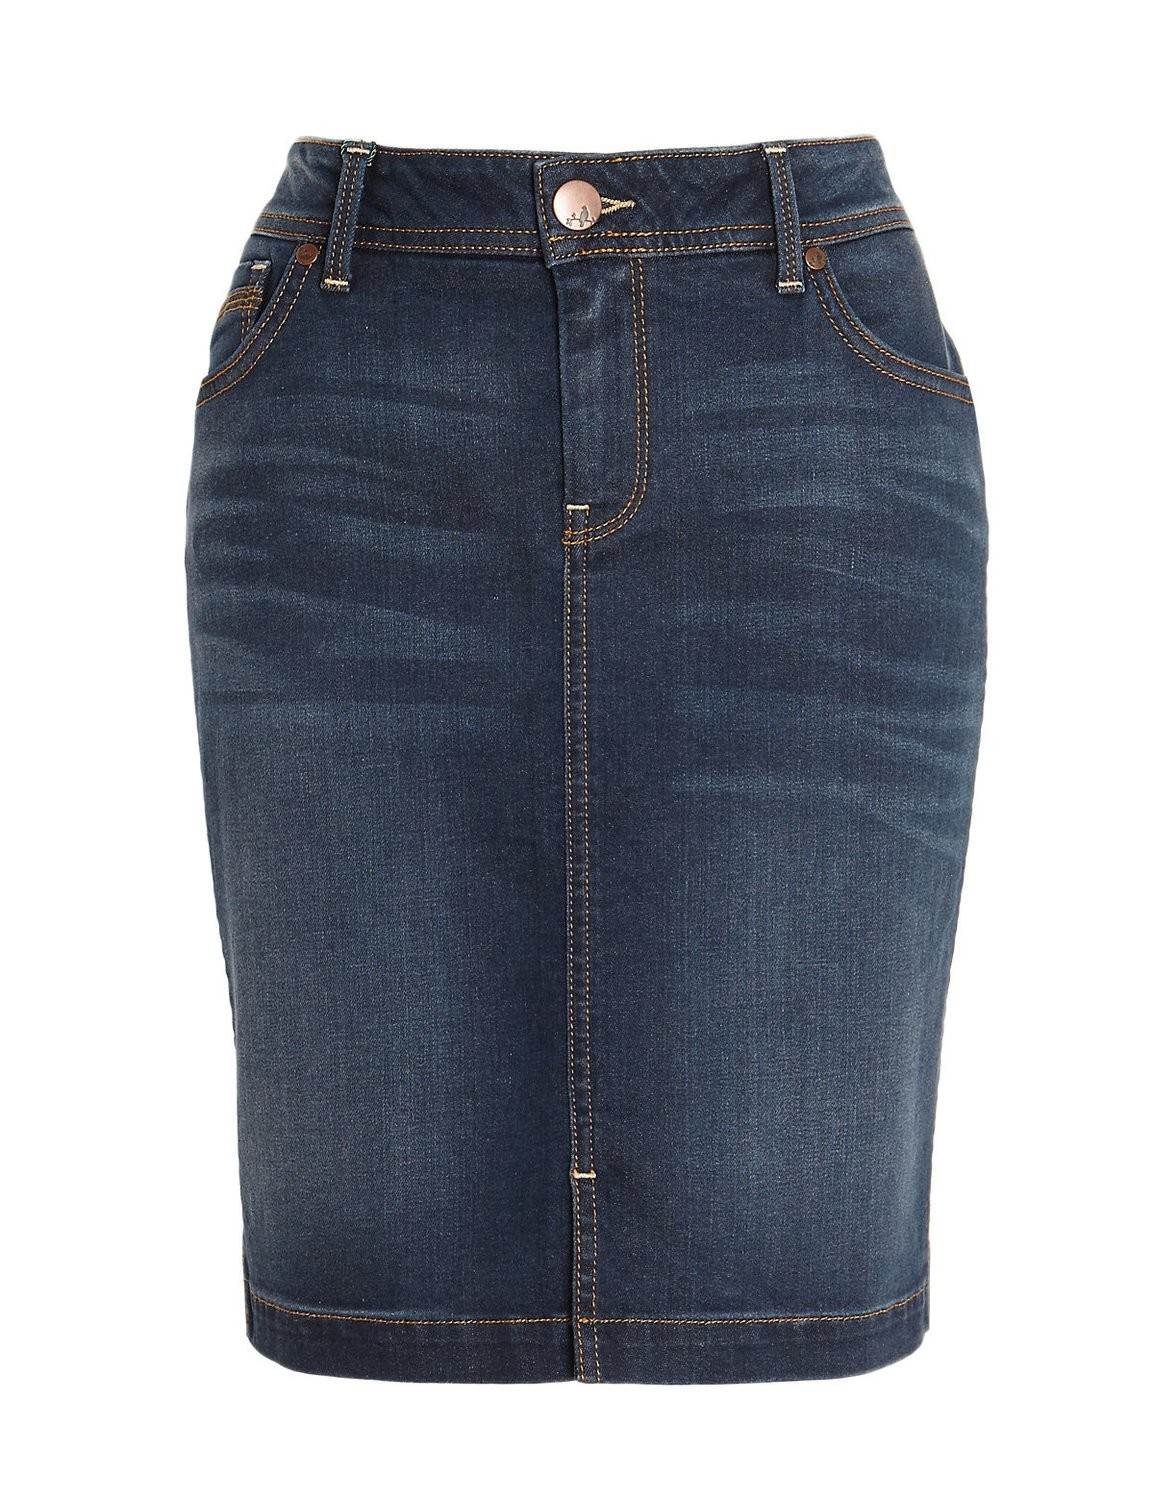 Cotton Rich Washed Look Denim Mini Skirt by M&S